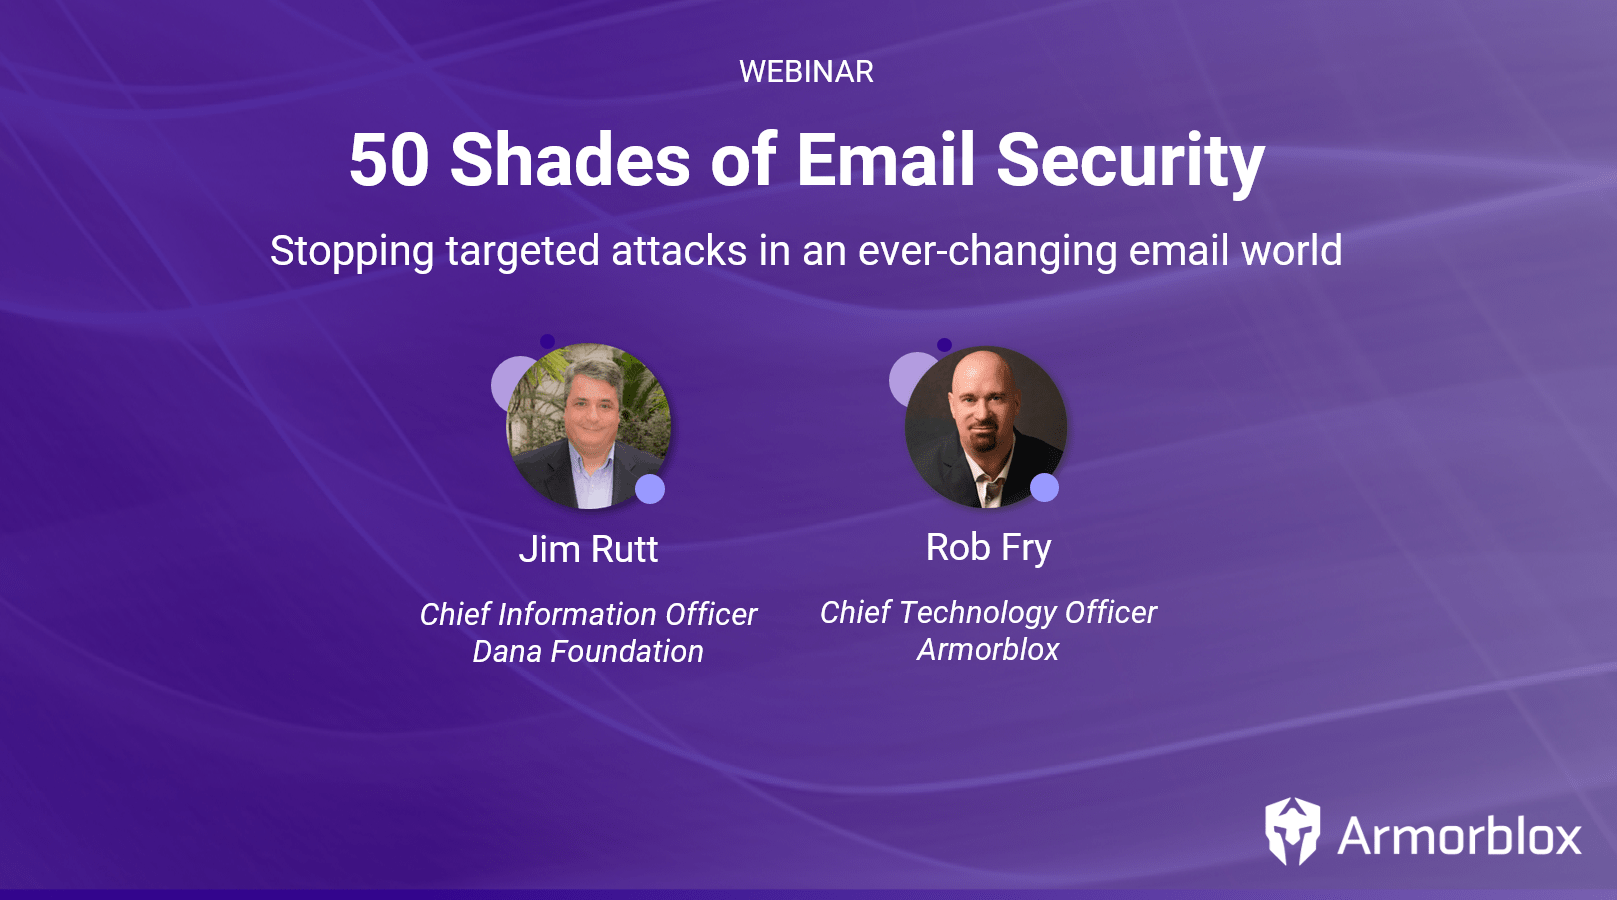 50 Shades of Email Security